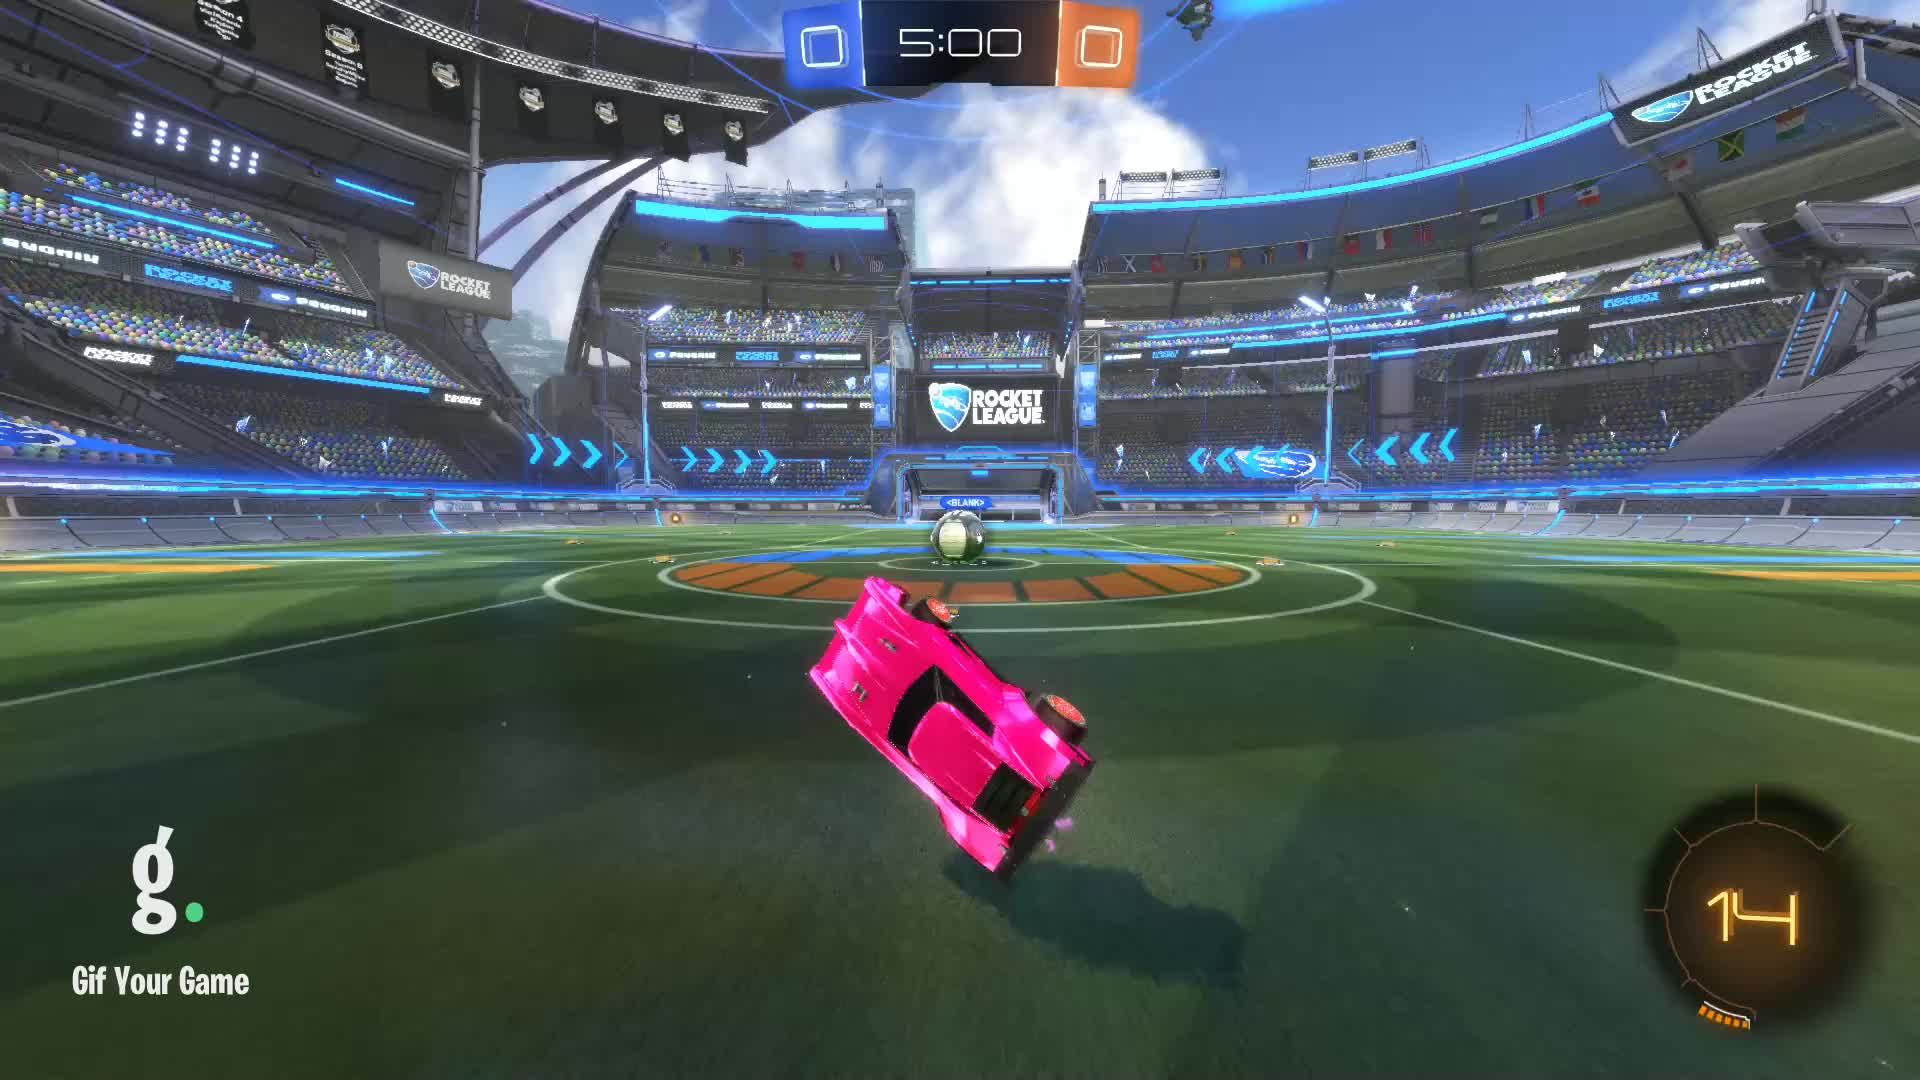 Gif Your Game, GifYourGame, Goal, MrFudgeisgood, Rocket League, RocketLeague, ⏱️ Goal 1: MrFudgeisgood GIFs